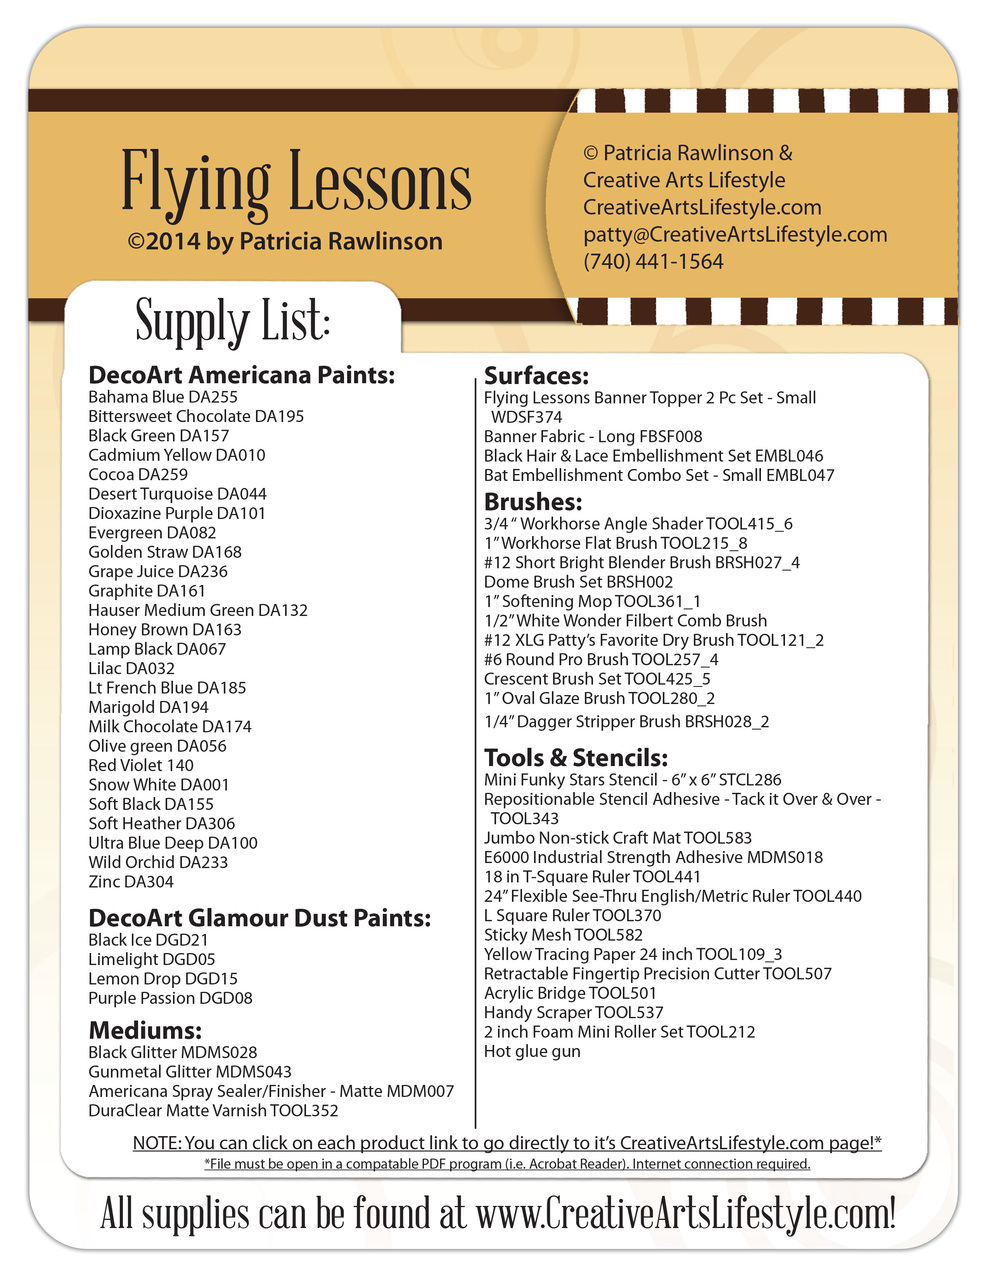 Flying Lessons E-Packet - Patricia Rawlinson